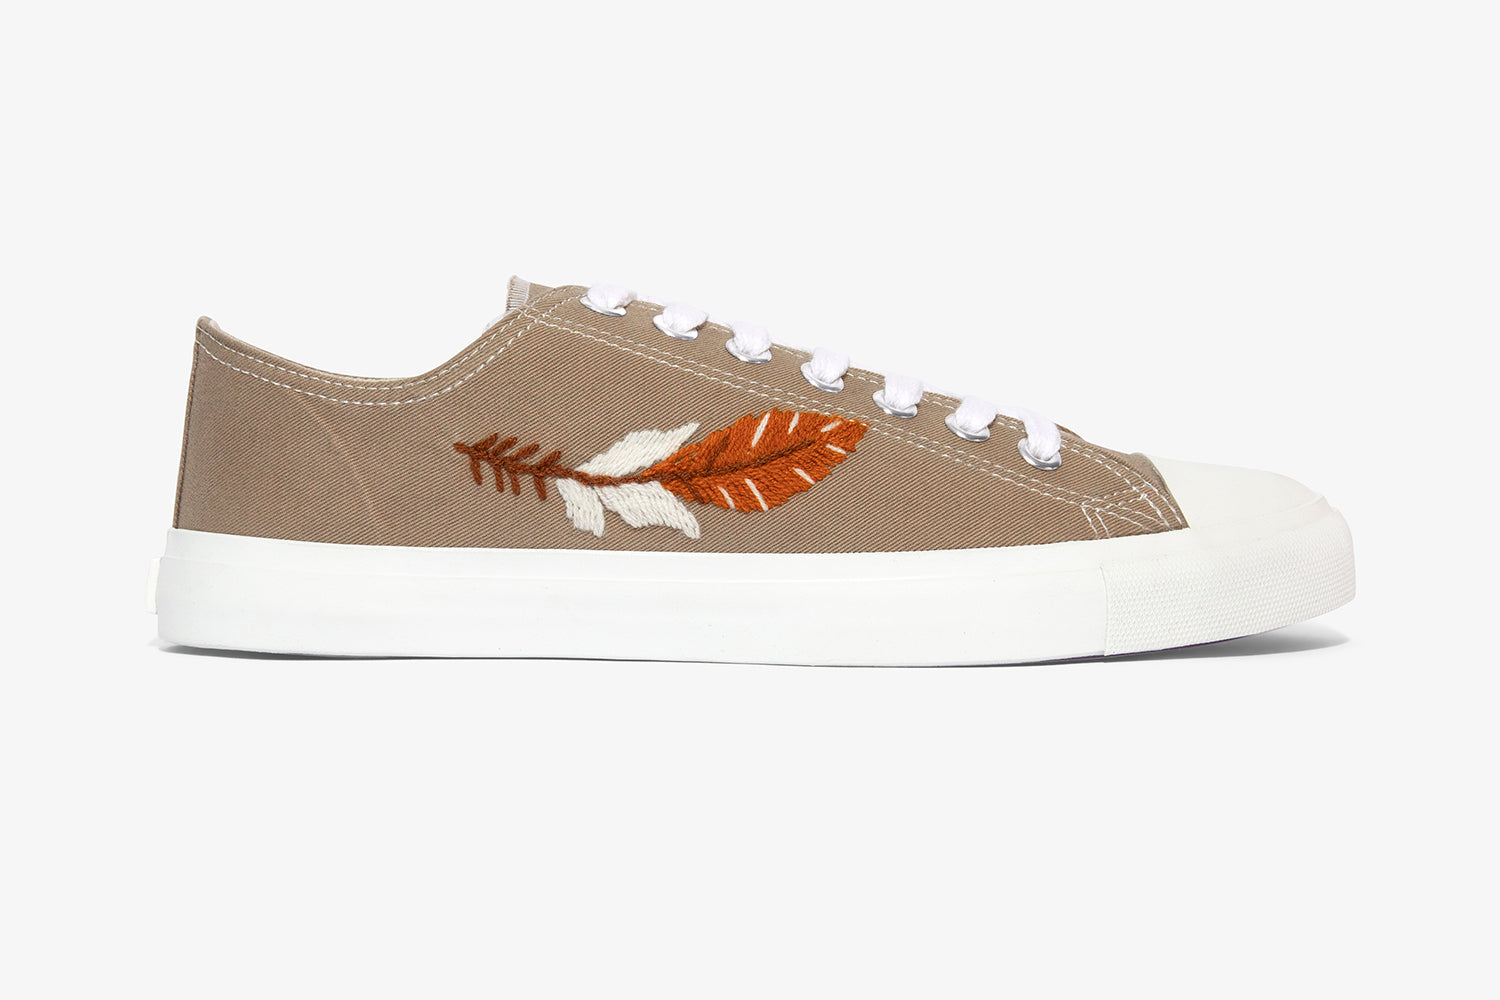 Taupe low top sneaker_ vegan sneaker produced with fair trade values